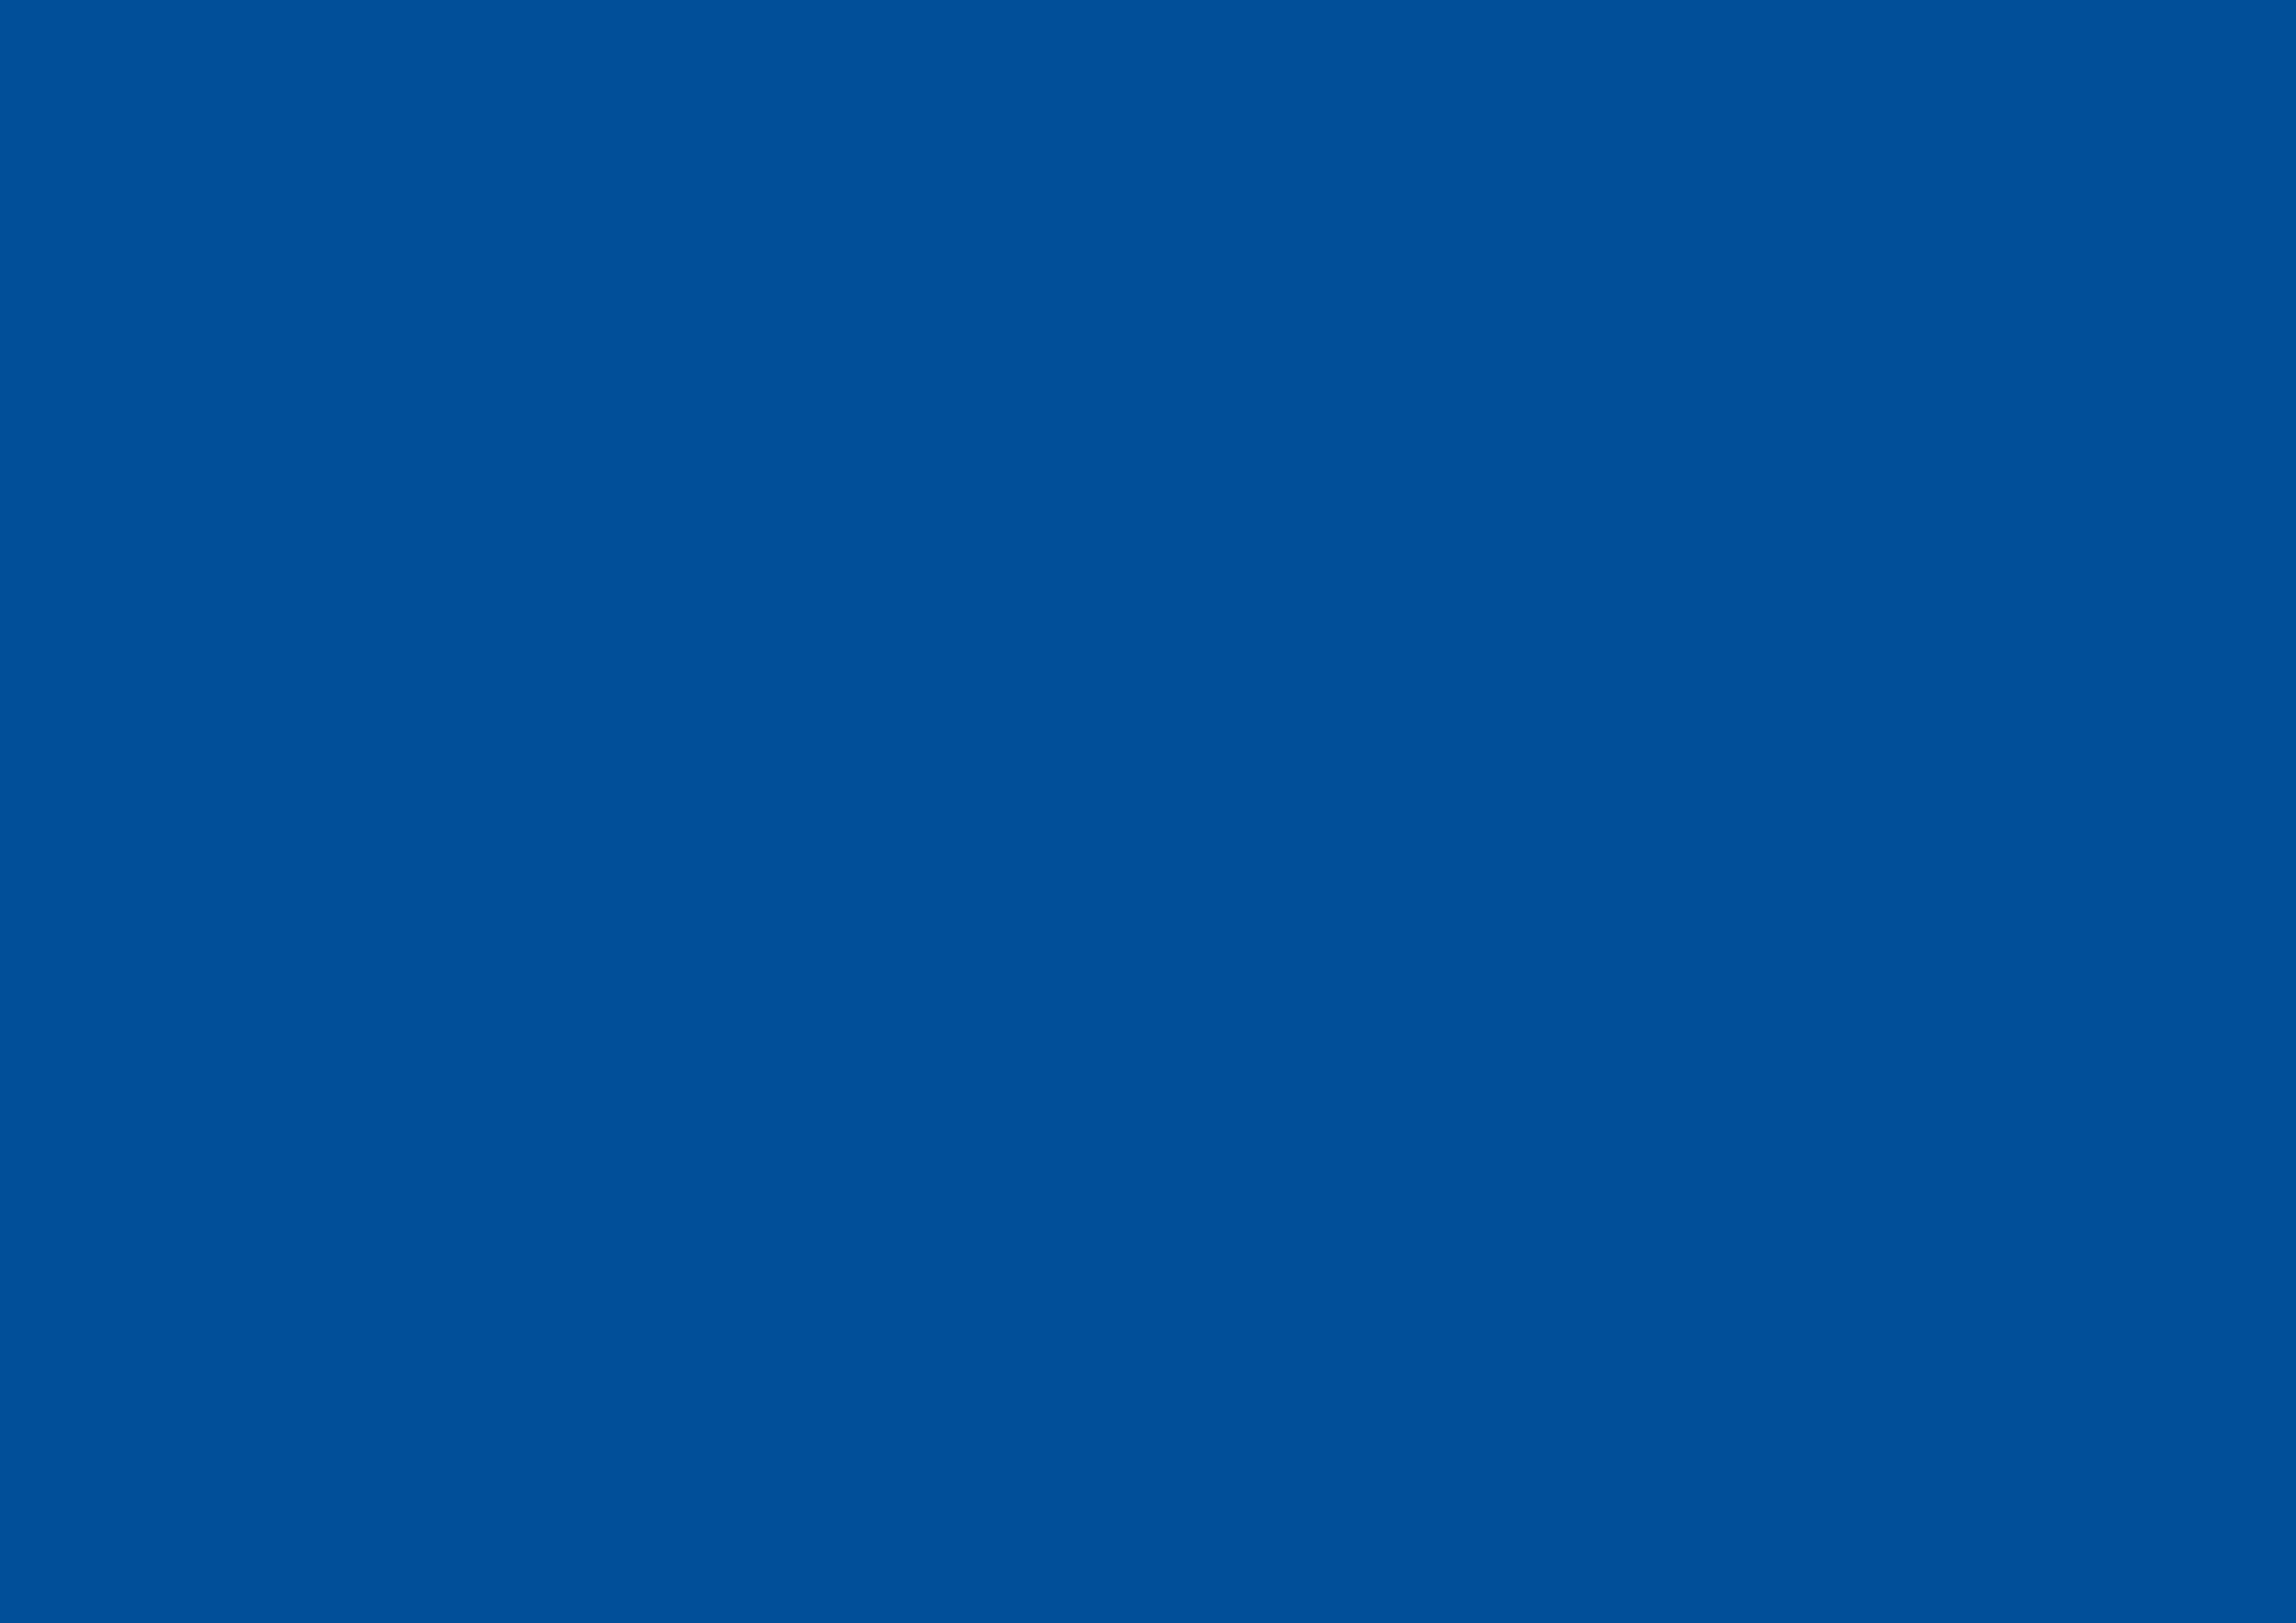 3508x2480 USAFA Blue Solid Color Background